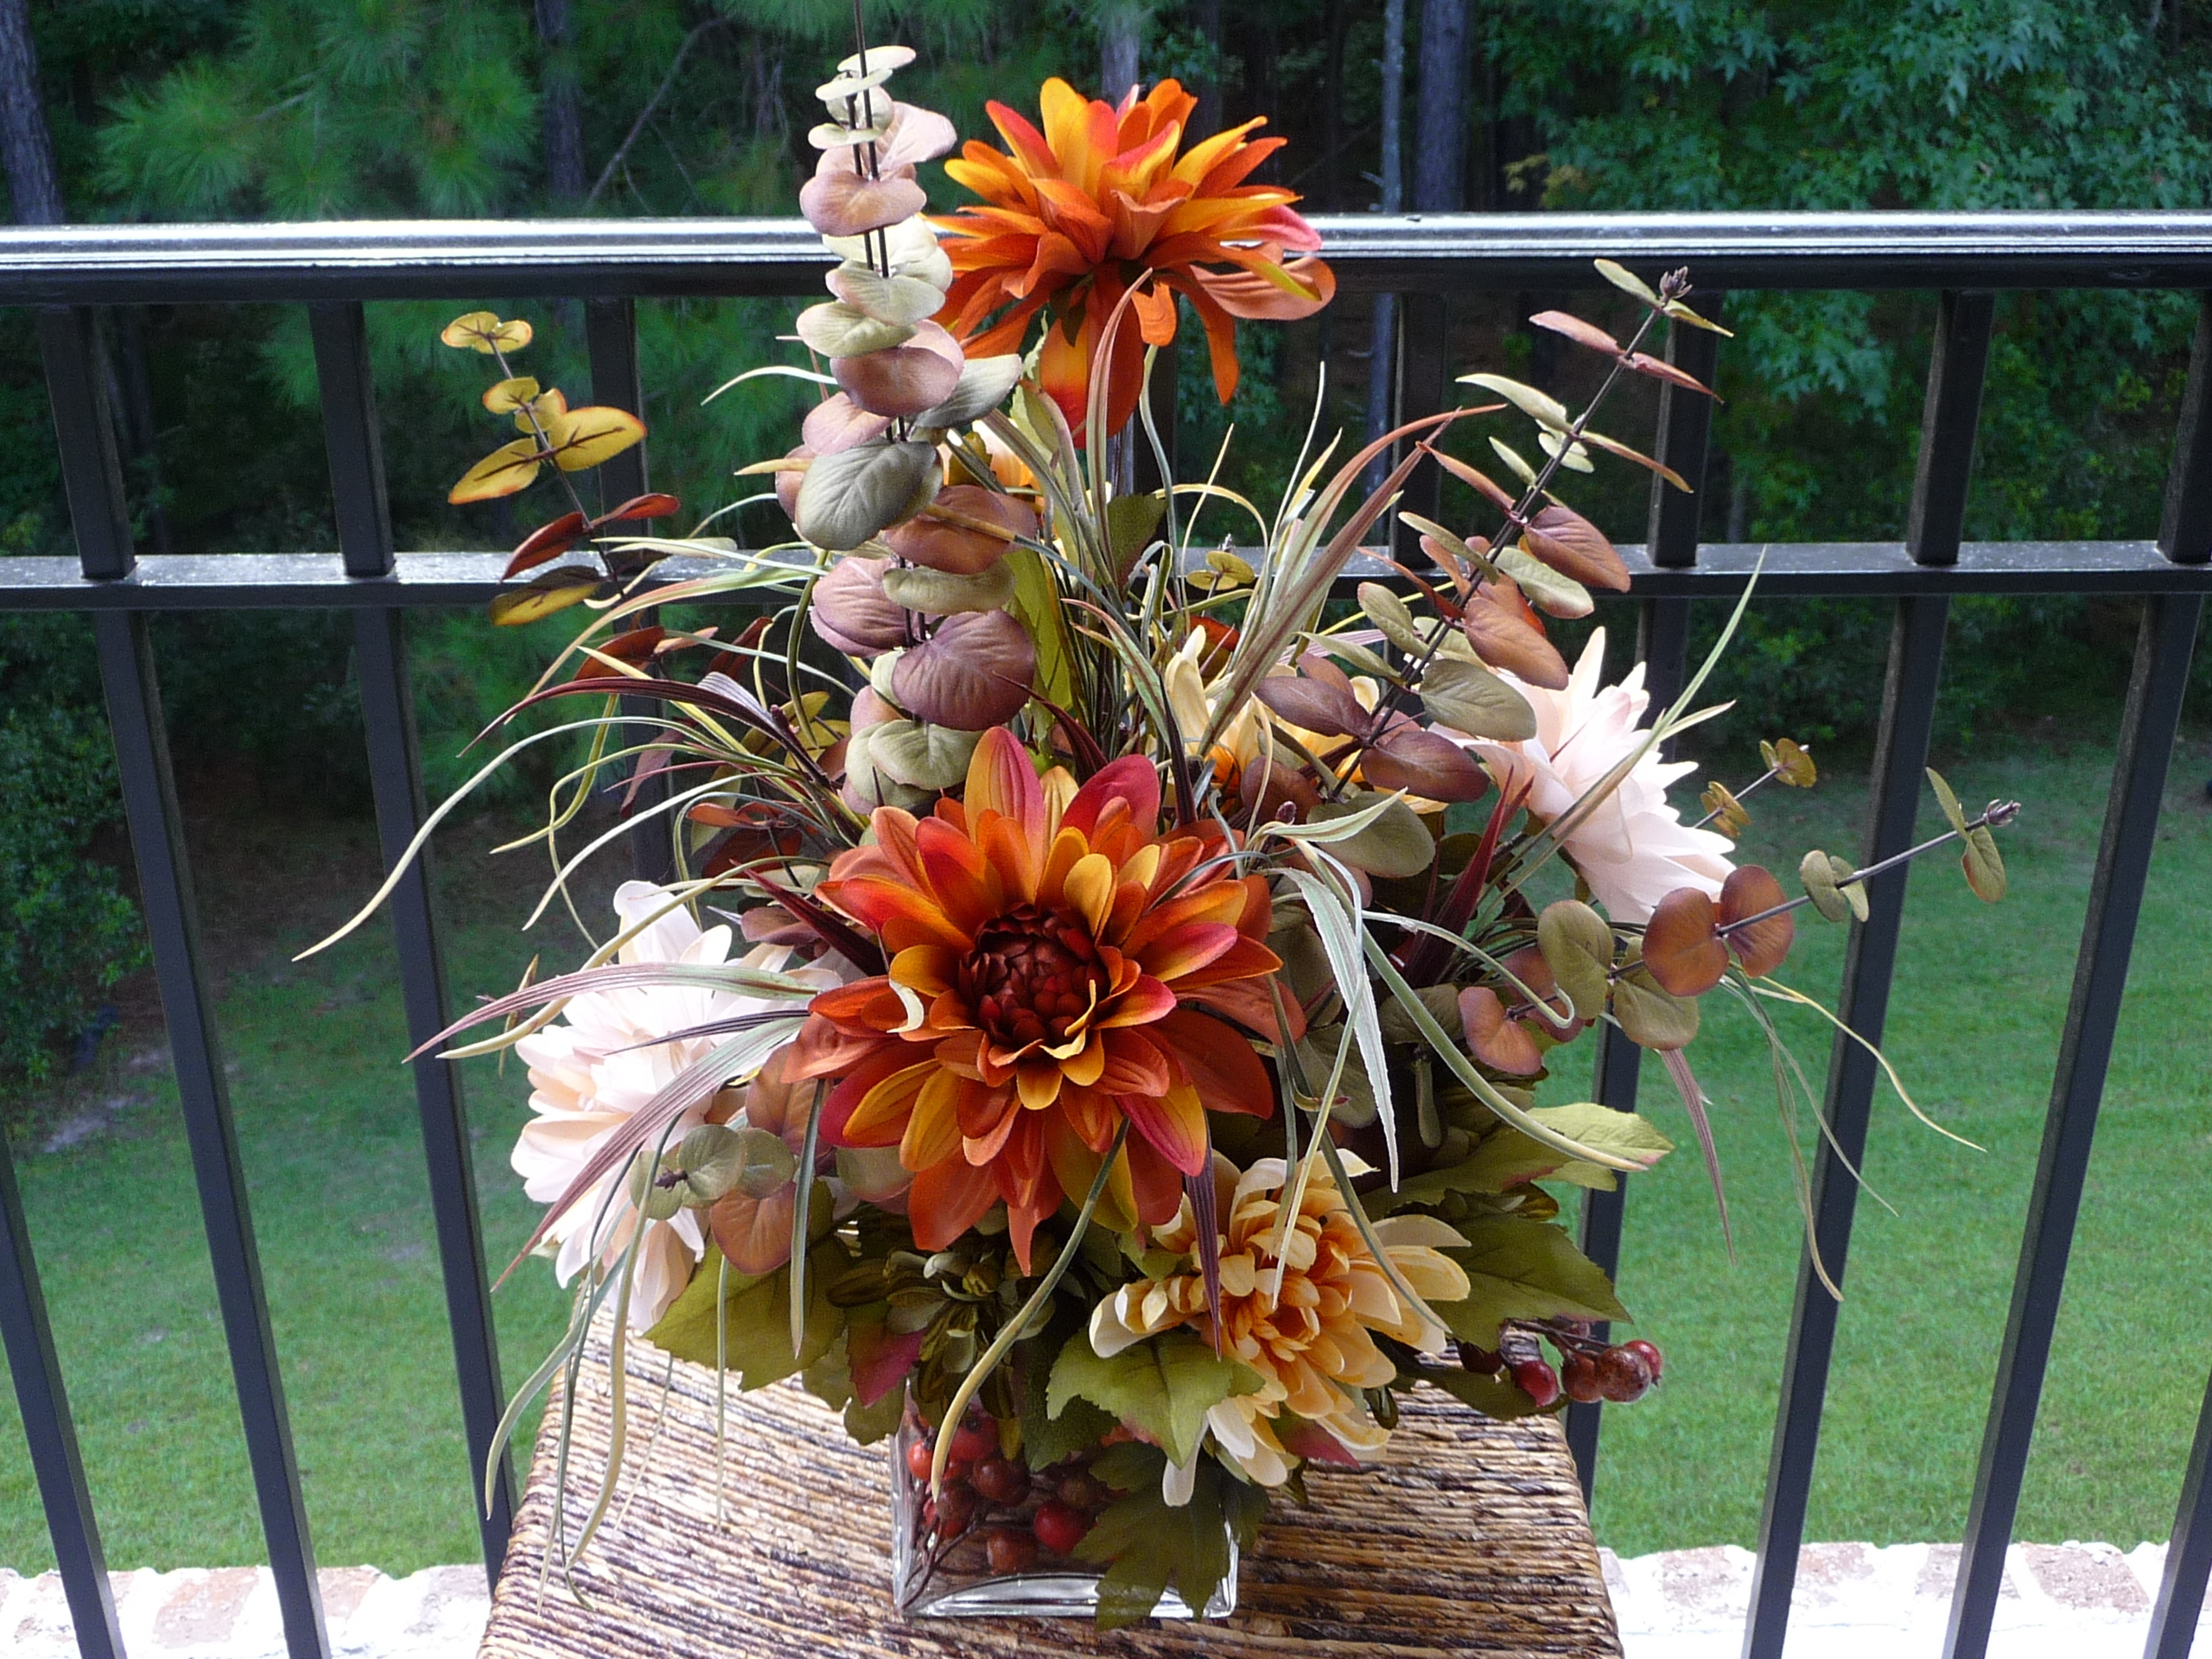 Ceremony, Inspiration, Reception, Flowers & Decor, white, ivory, orange, brown, gold, Ceremony Flowers, Centerpieces, Flowers, Centerpiece, Wedding, And, Board, Mums, Dahlias, Savannah event decor